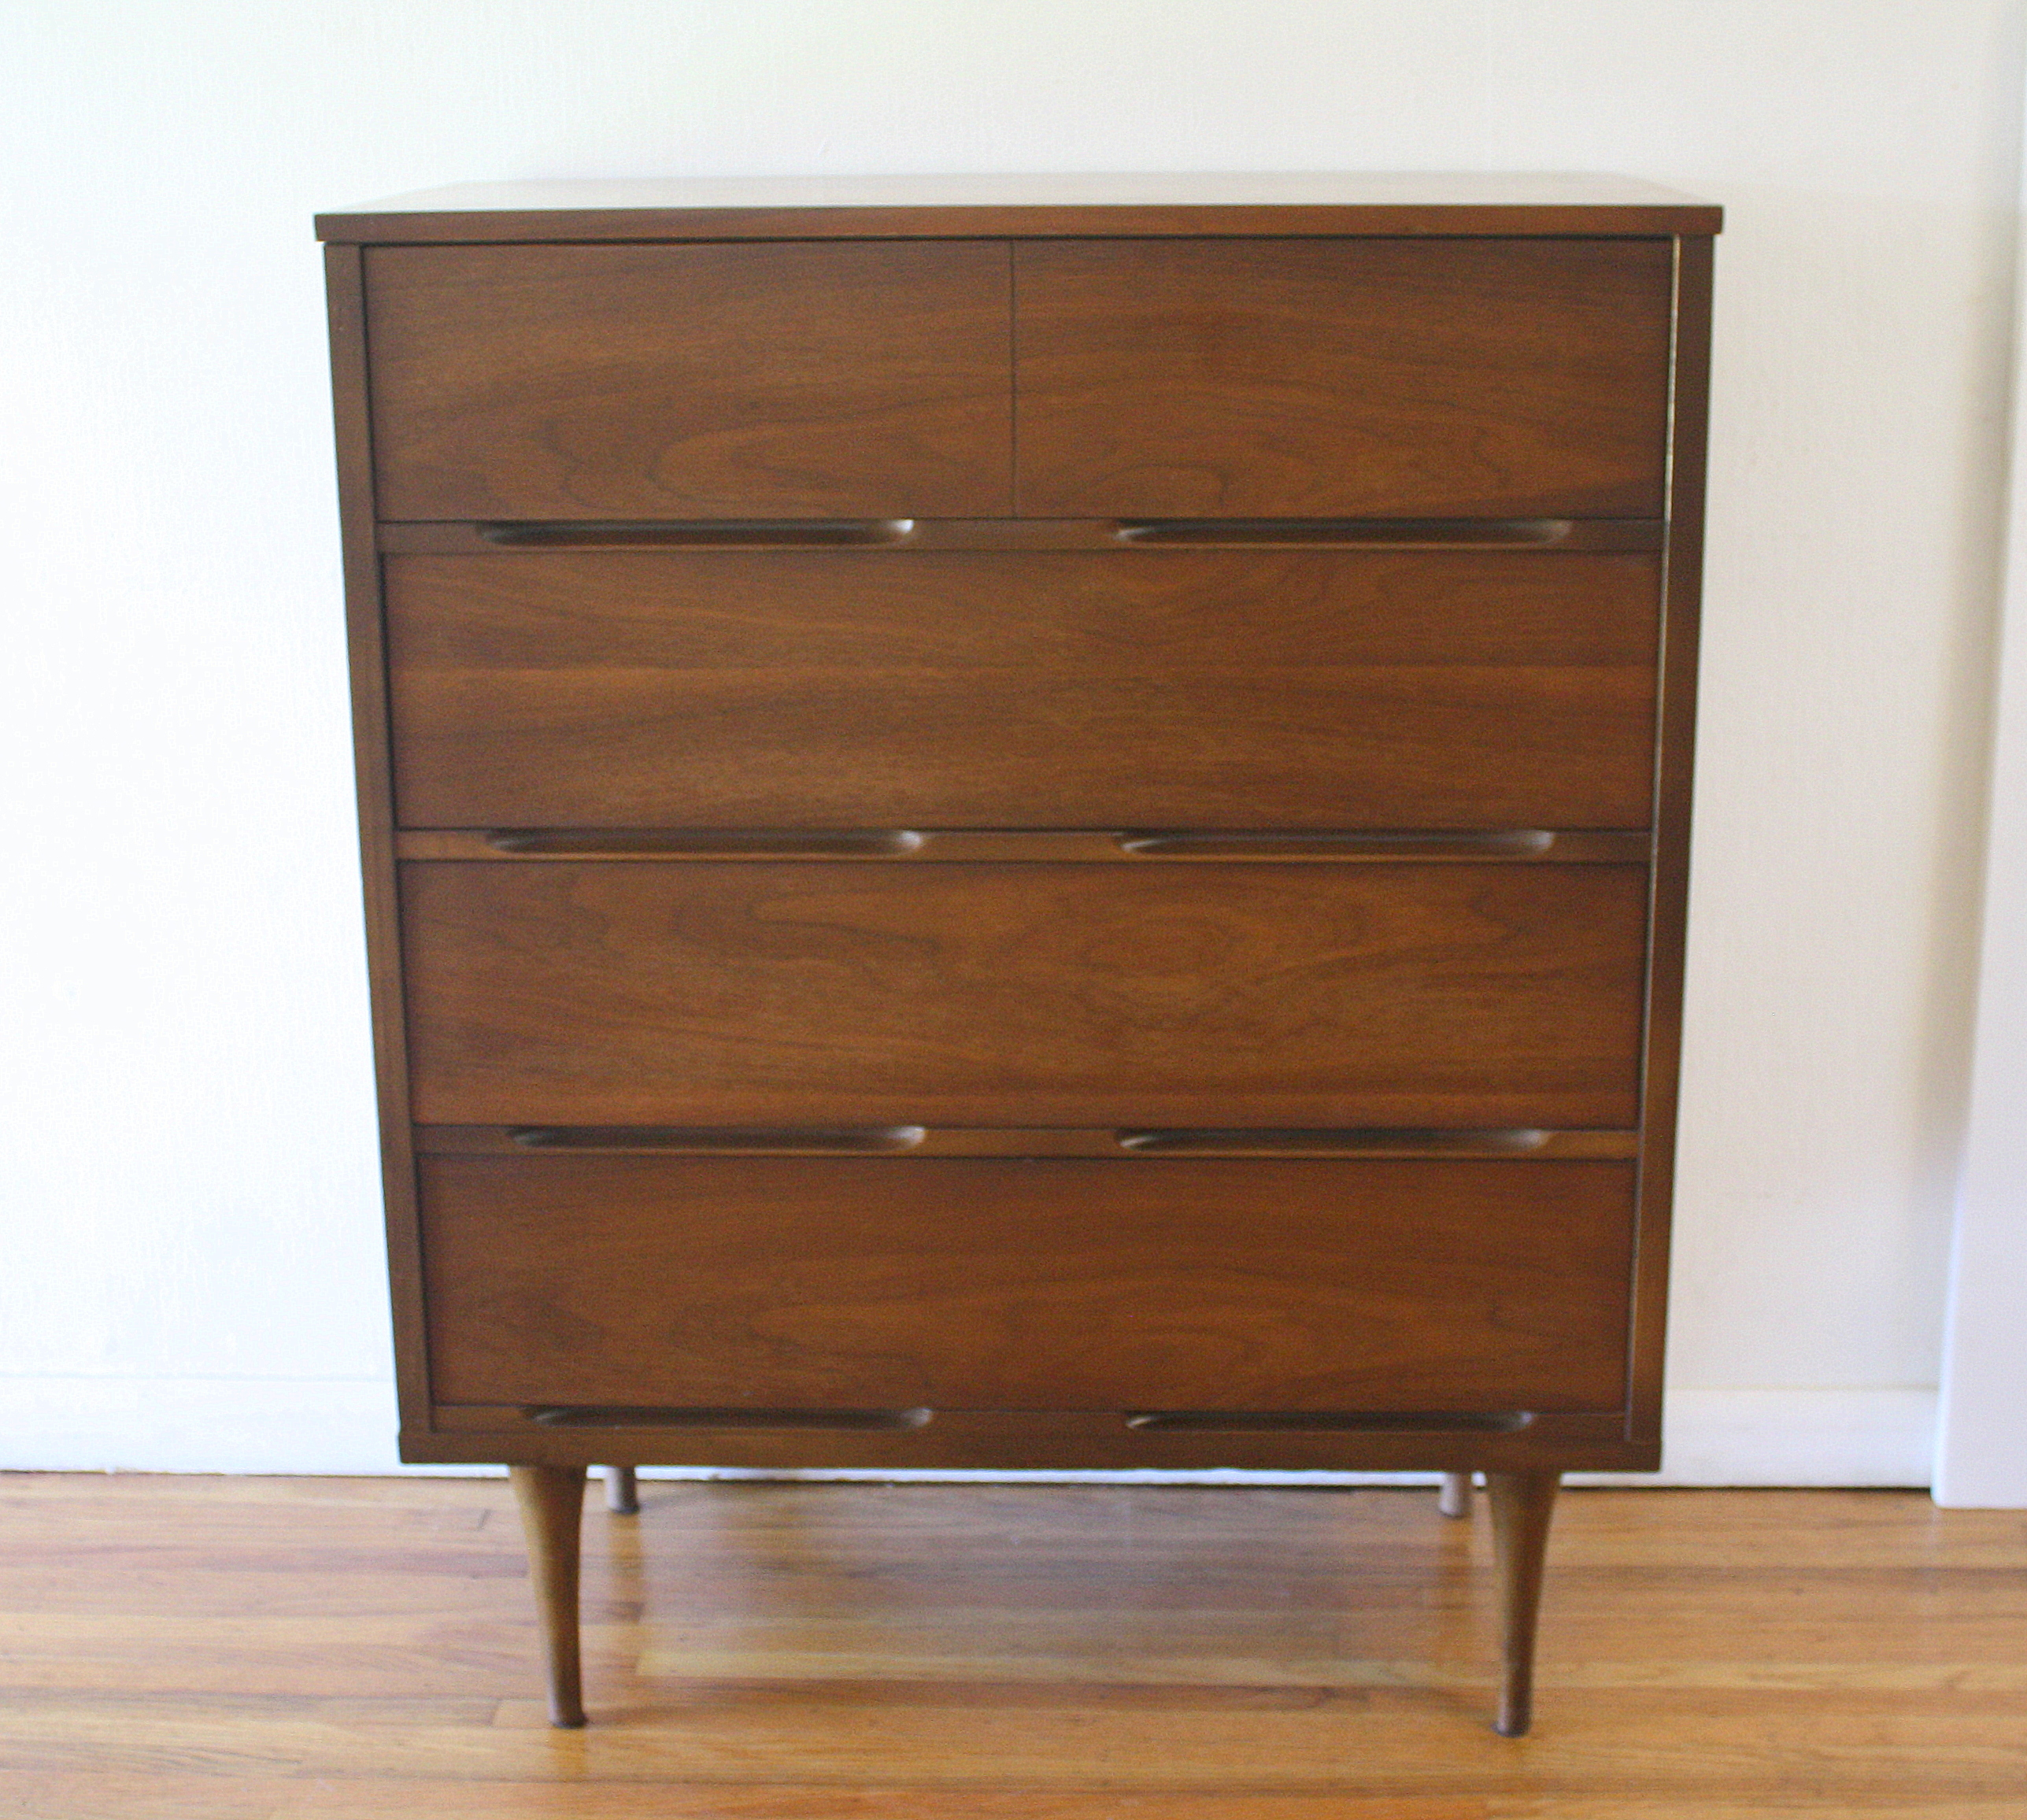 mcm tall dresser with streamlined design 1.JPG